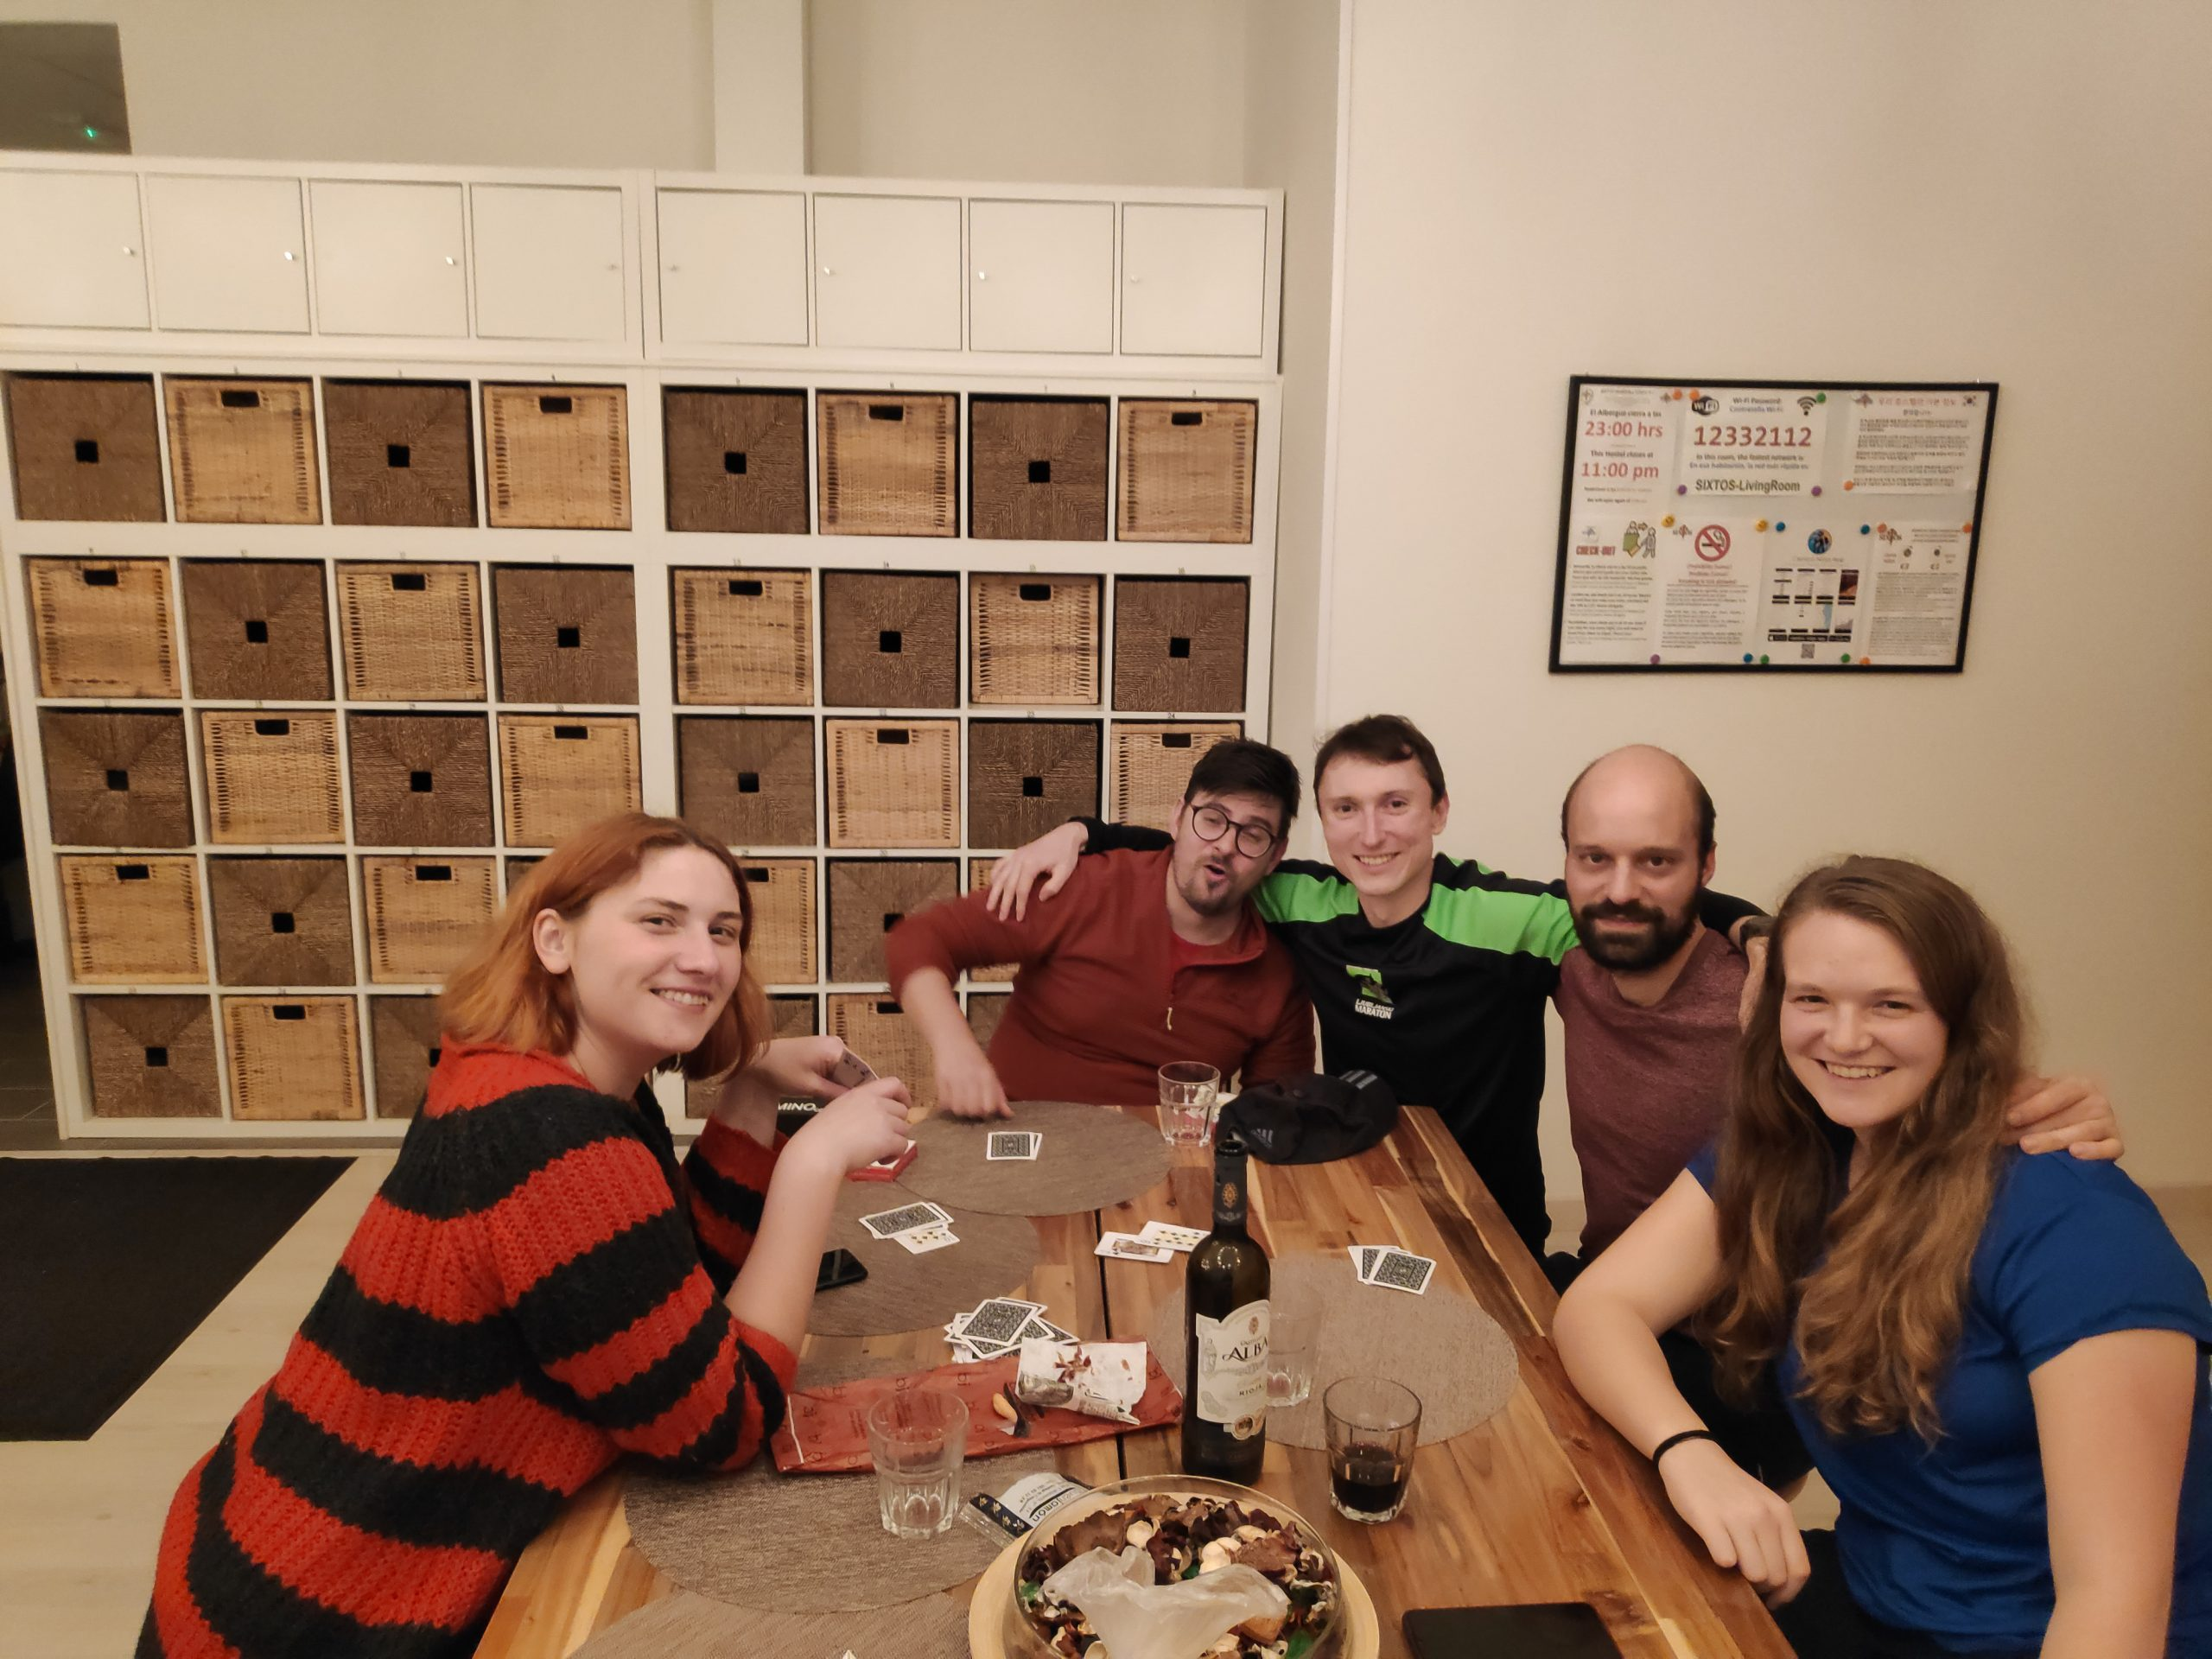 Last group photo before I went to bed. Because of course, what did Jakob do on the night, before walking 60 km? Well I don't know, but I can tell you what he did not do, sleep!